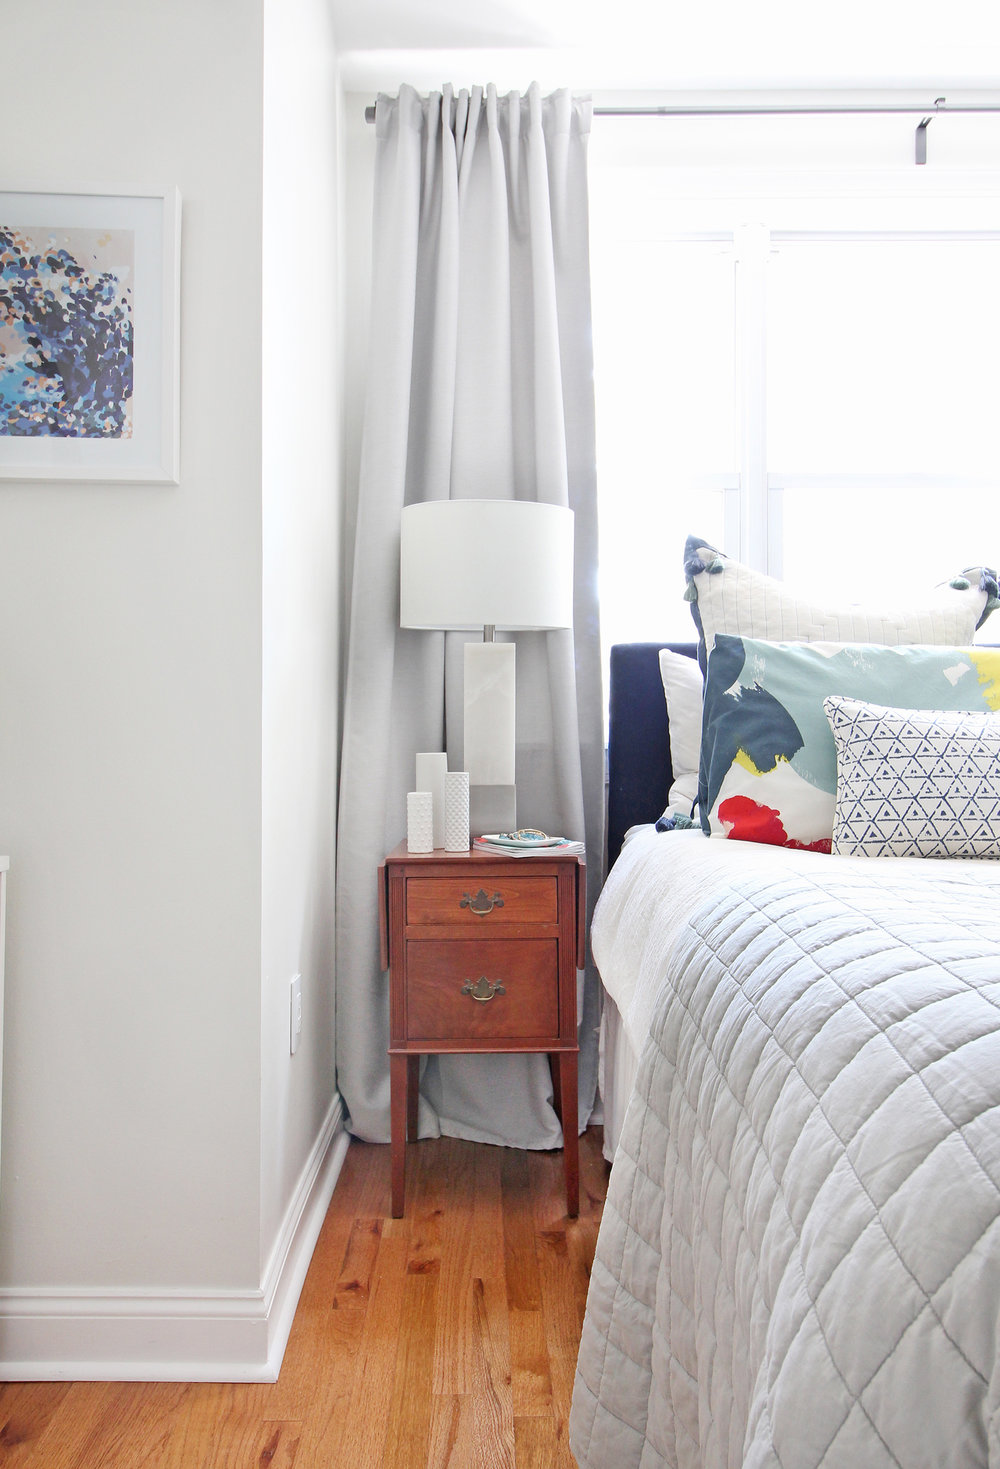 Head to the blog to check out Mix & Match Design Company's mini refresh of her eclectic modern master bedroom. Mixing old and new is one of her favorite things to do. She inherited a pair of traditional nightstands from her grandmother and topped them with modern marble table lamps. A gray linen quilt works beautifully with her tasseled euro shams, watercolor shams, and blue and white lumbar pillows.